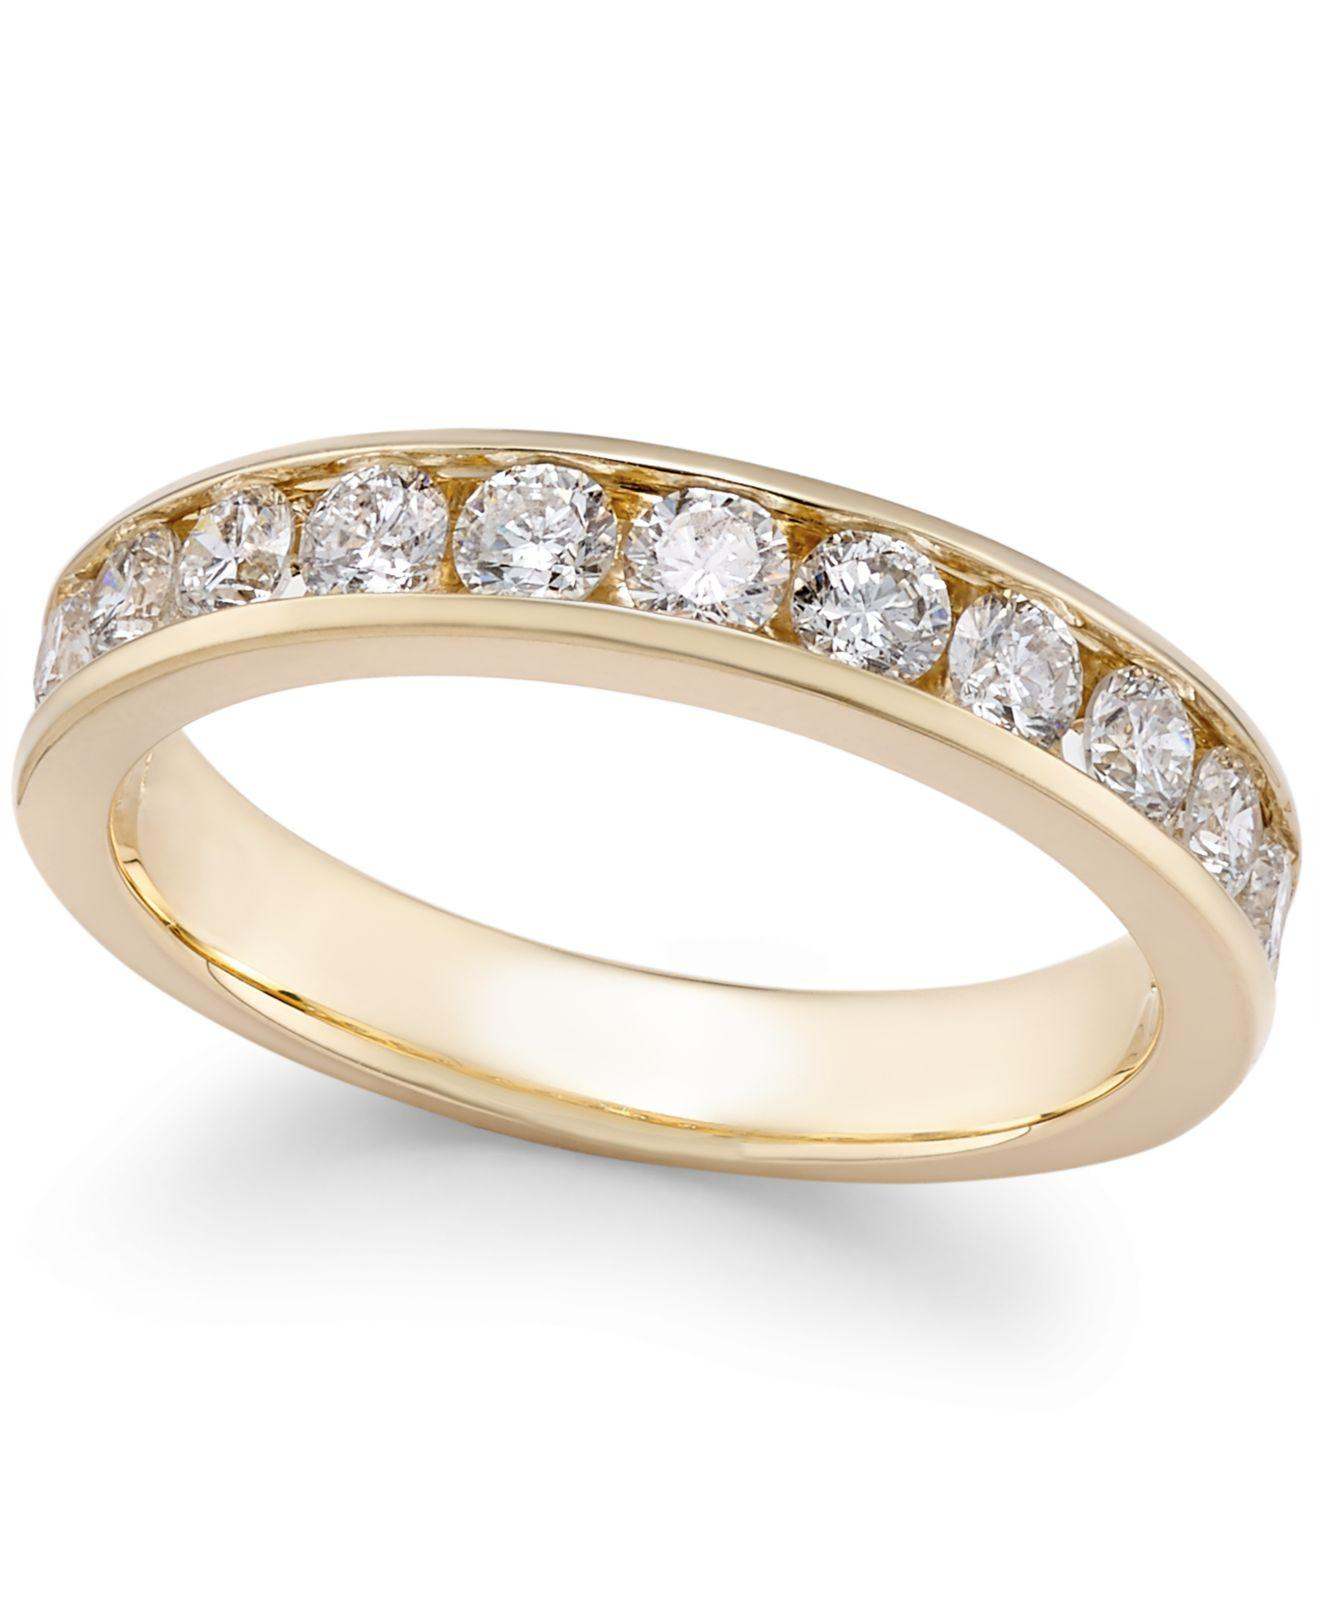 Macy s Diamond Channel set Band 2 Ct T w In 14k Gold White Gold in